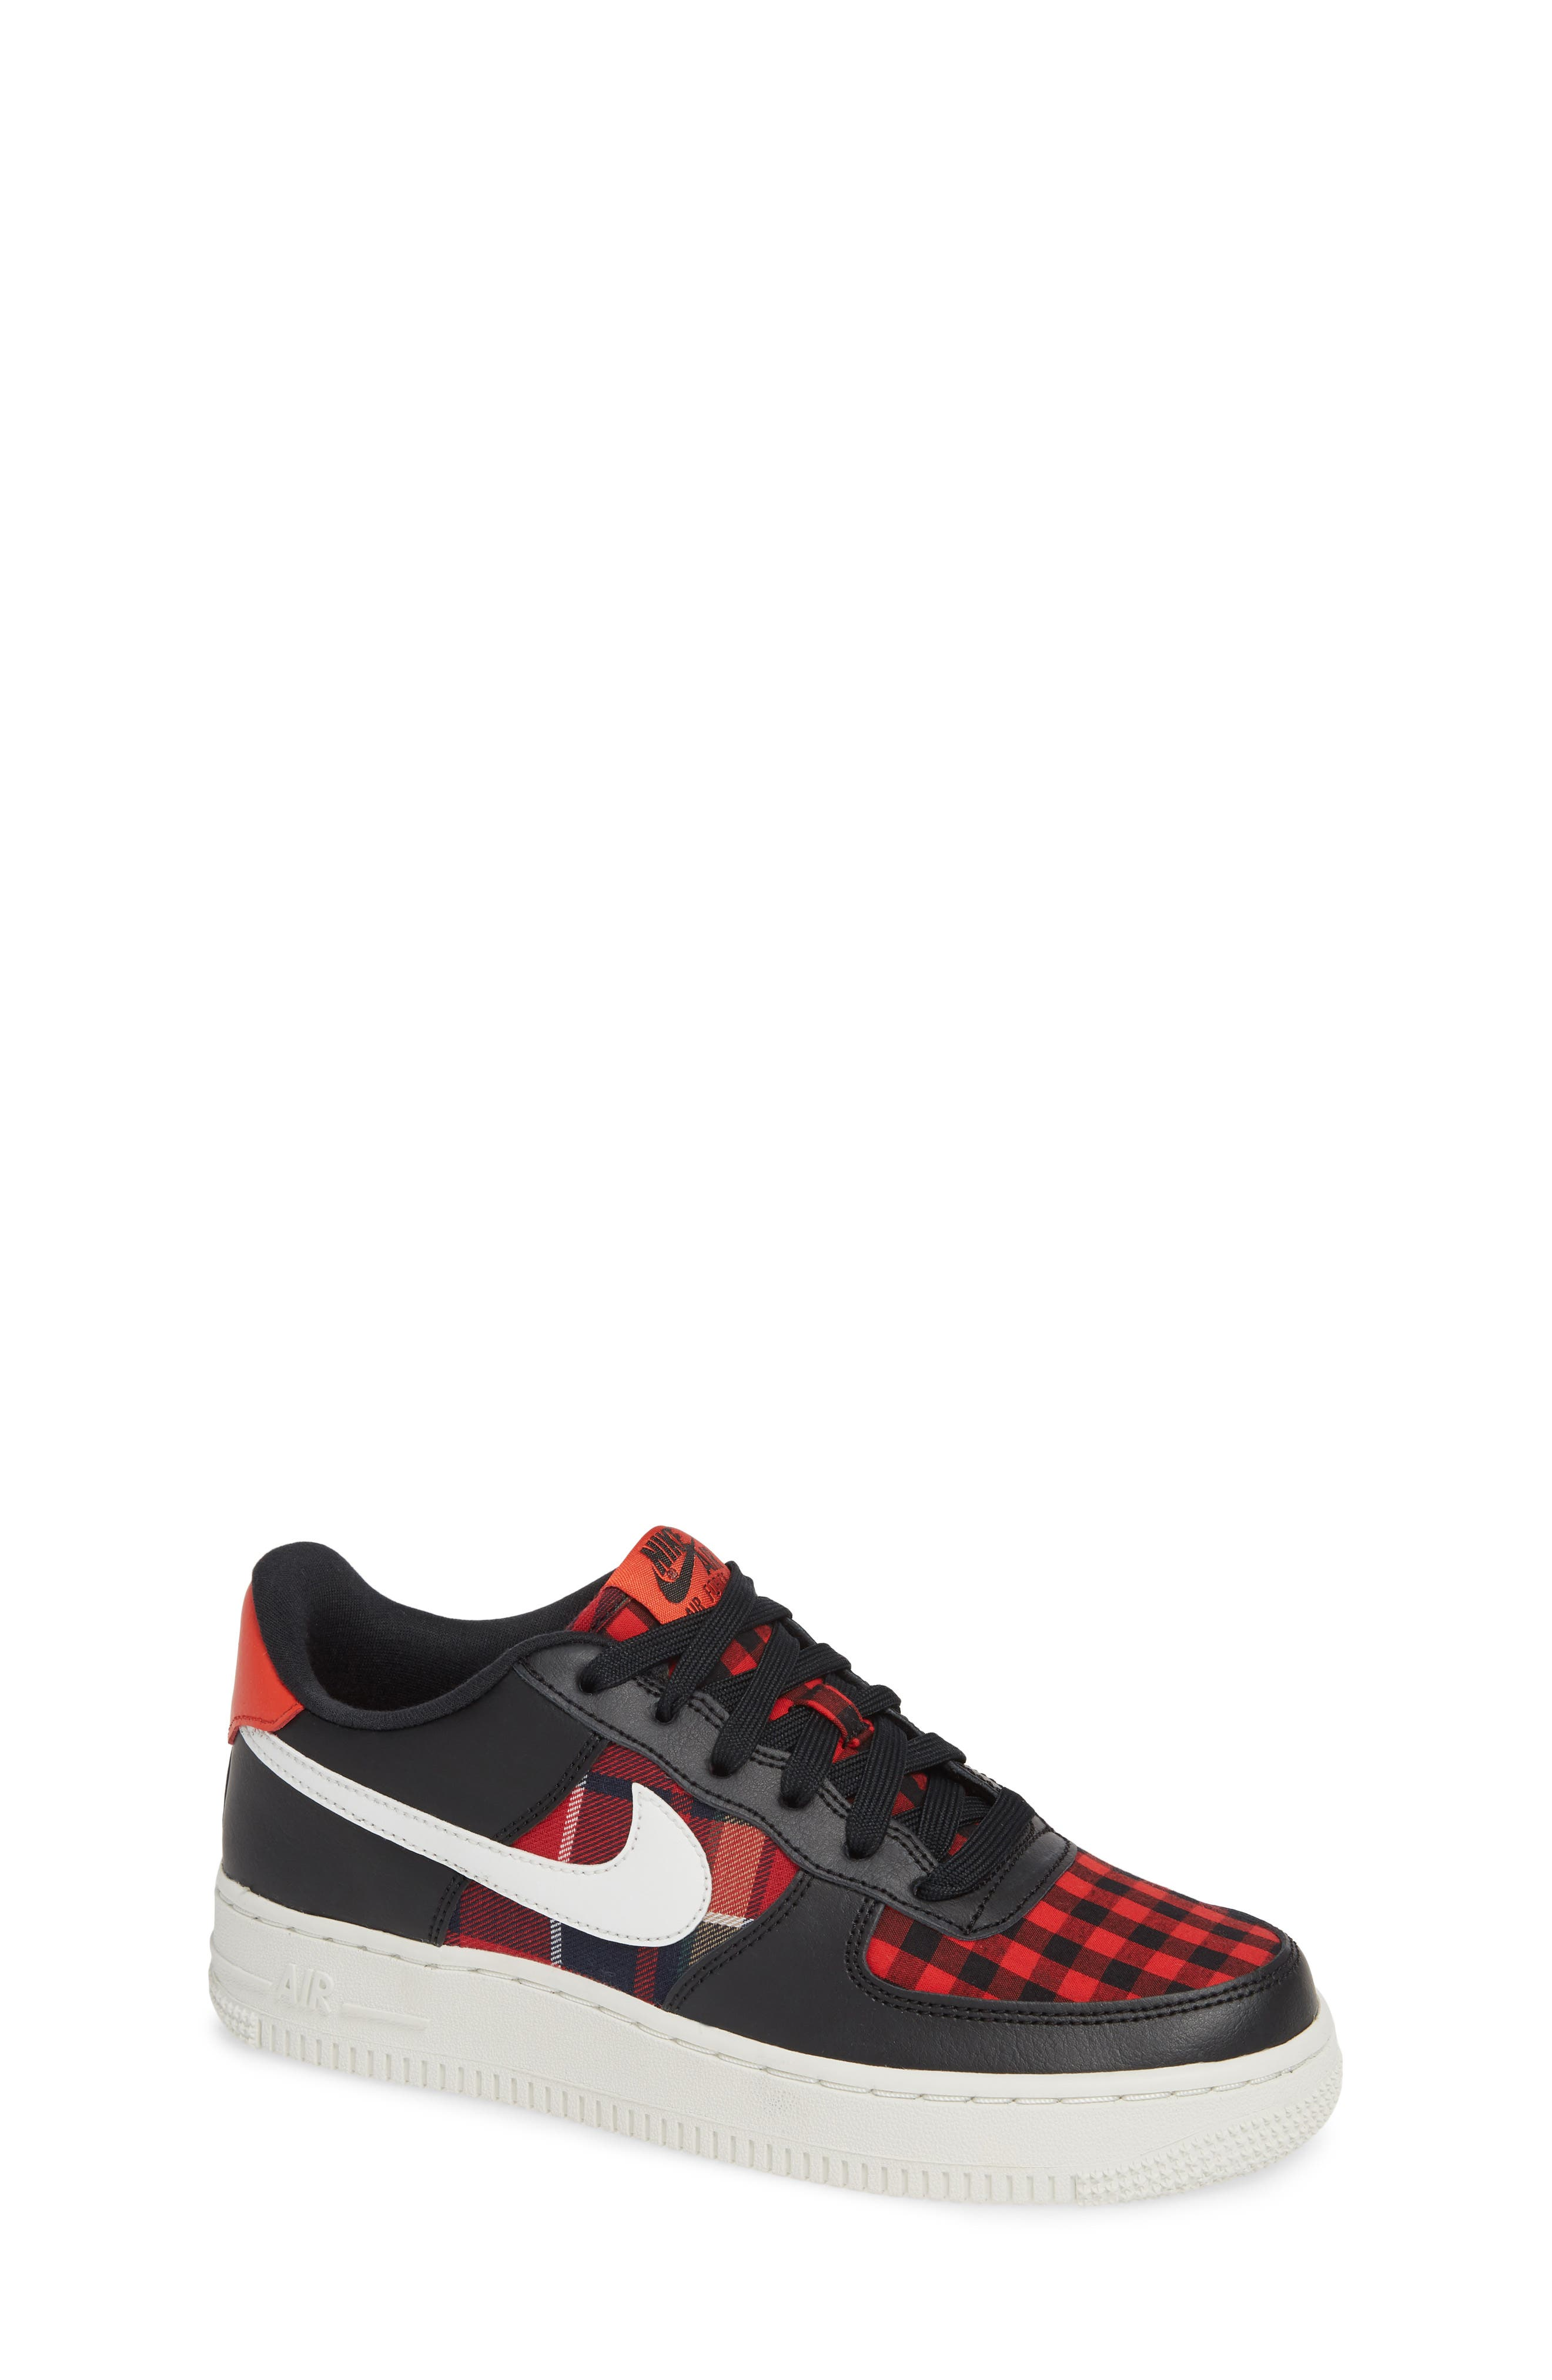 Air Force 1 LV8 Sneaker,                         Main,                         color, BLACK/ SUMMIT RED